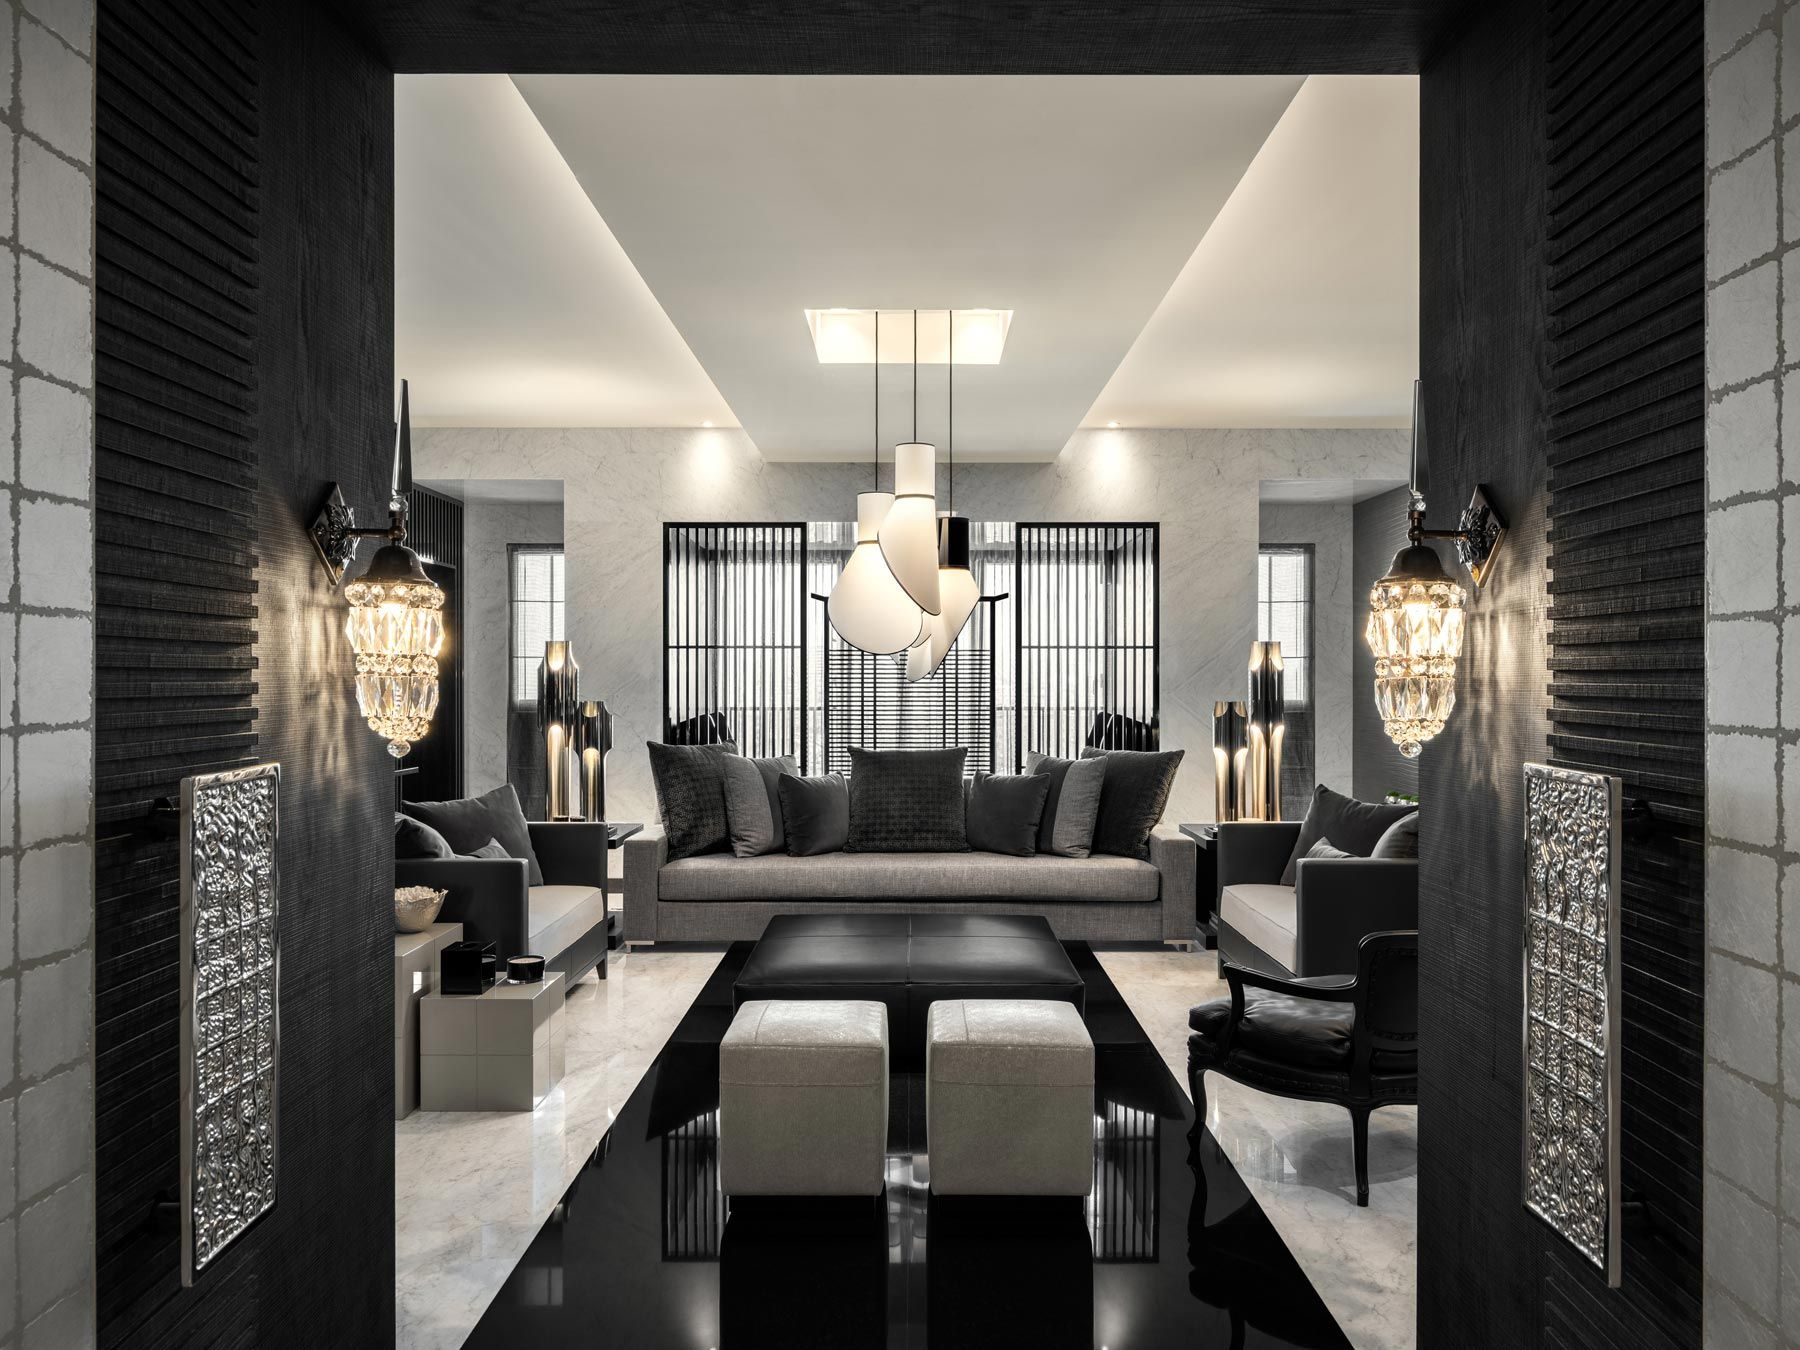 Best Interior Design Projects By Kelly Hoppen In 2021 Kelly Hoppen Interiors Kelly Hoppen Living Room Interior Design